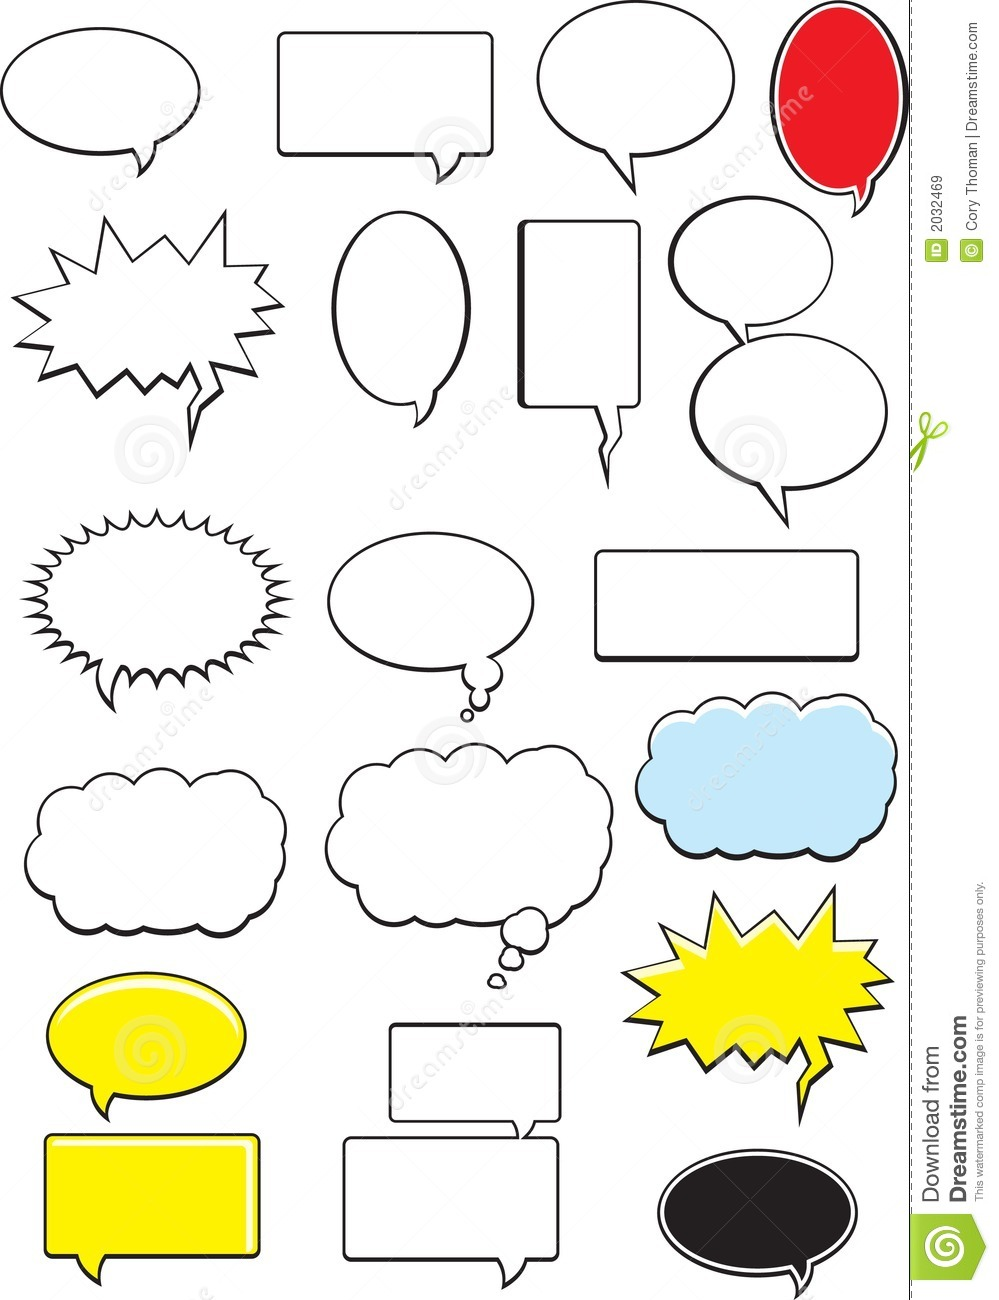 Word Bubbles Royalty Free Stock Images Image 2032469